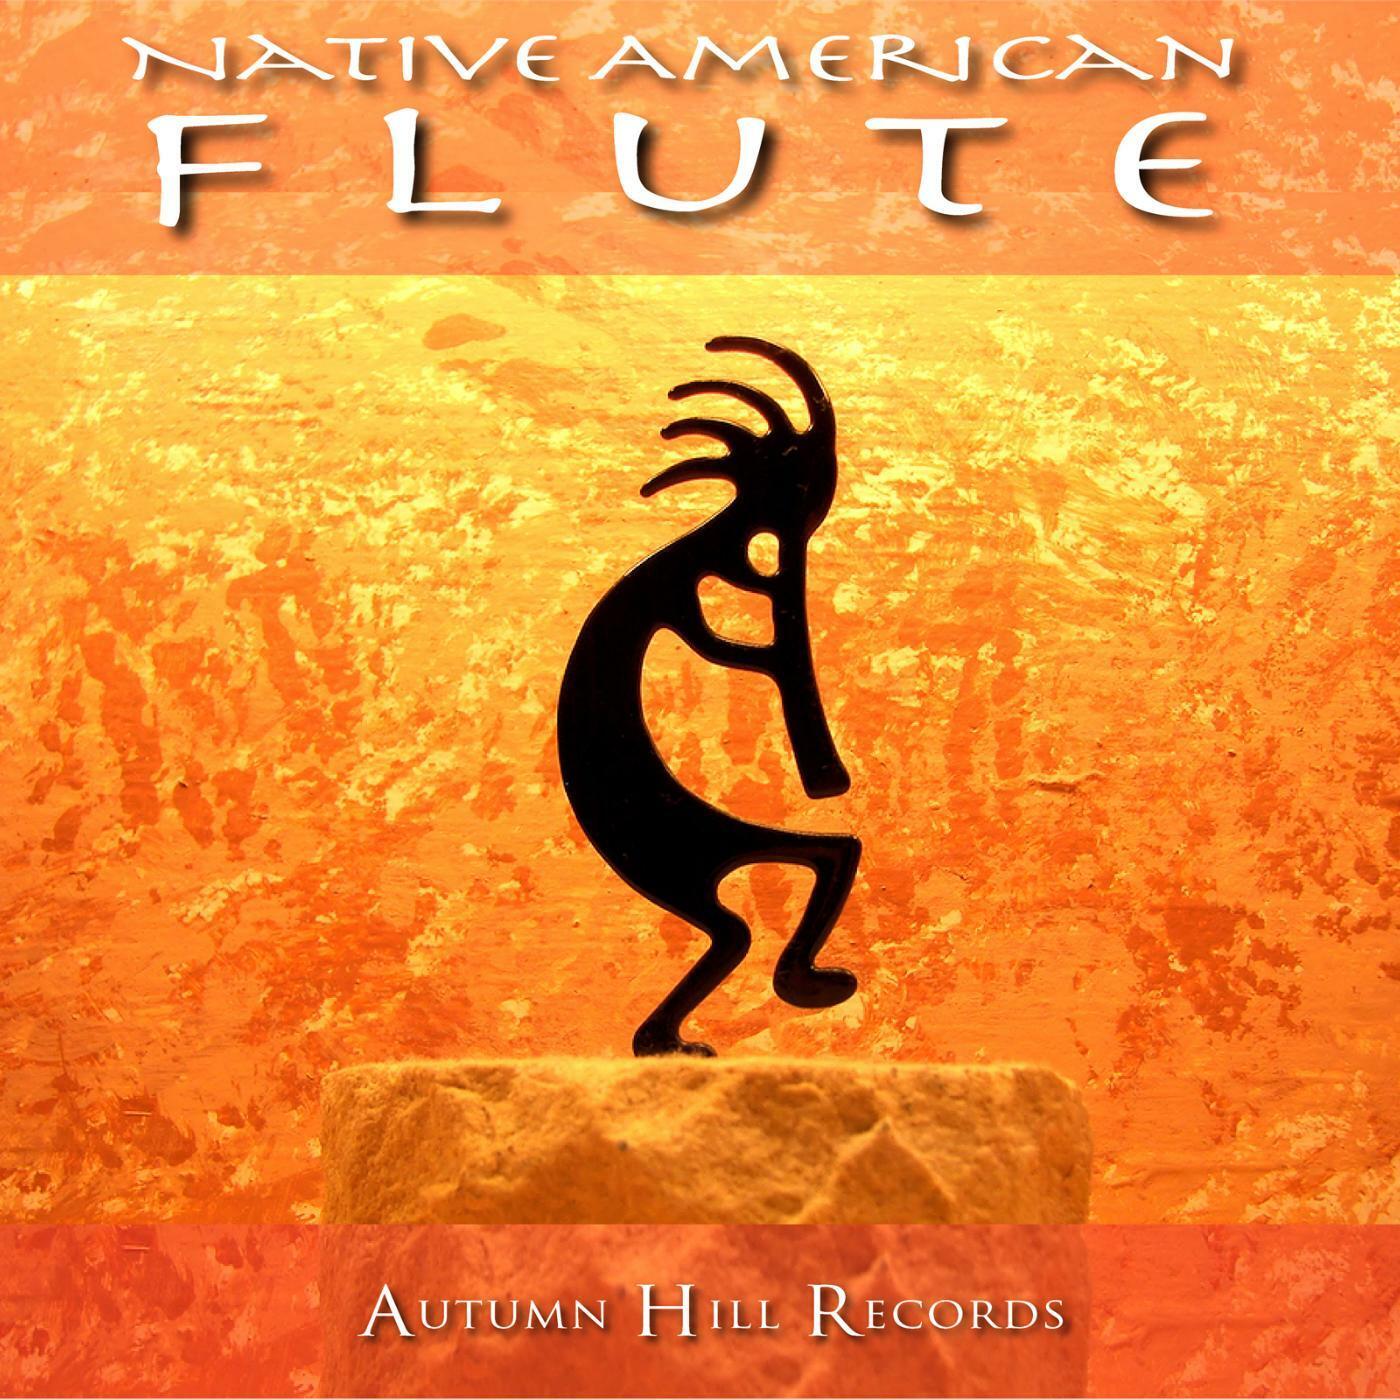 Native American Flute Radio: Listen to Free Music & Get The